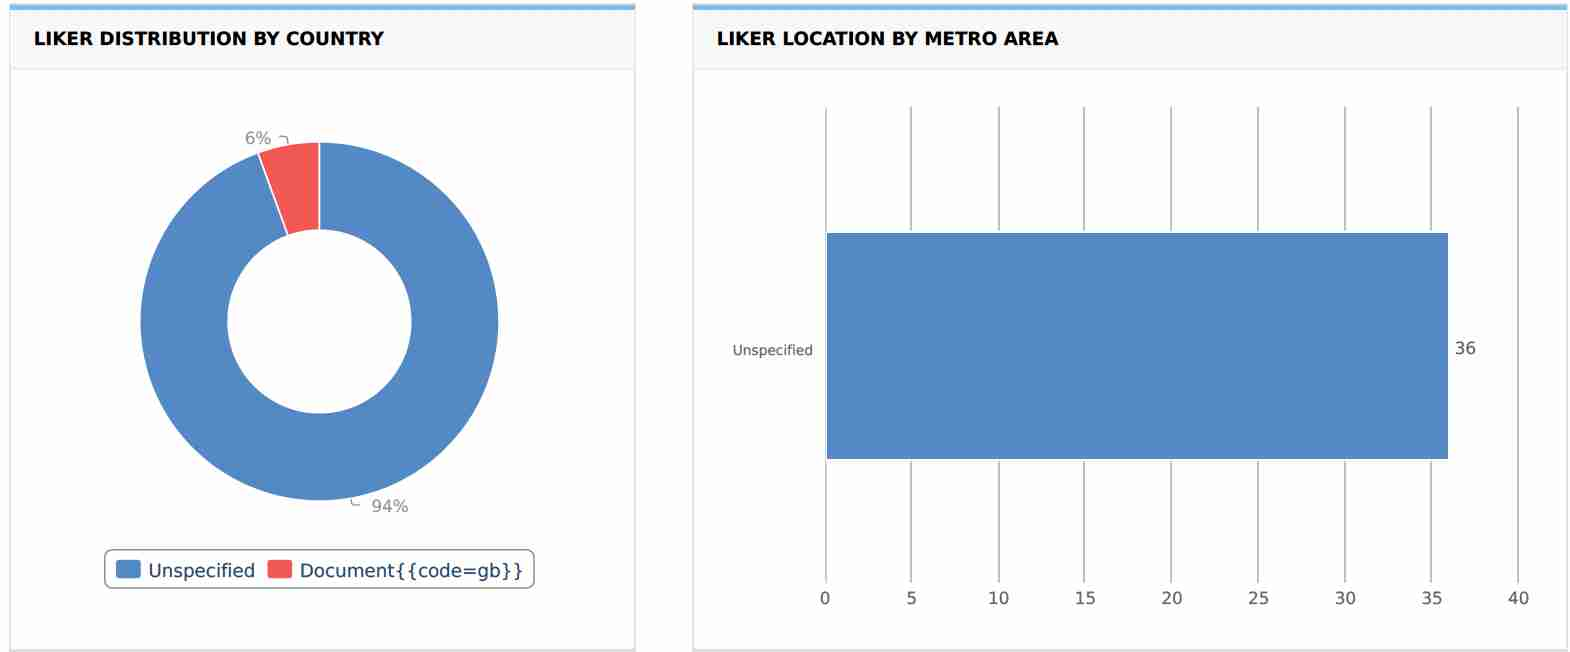 Liker Distribution by Country and Liker Location by Metro Area: